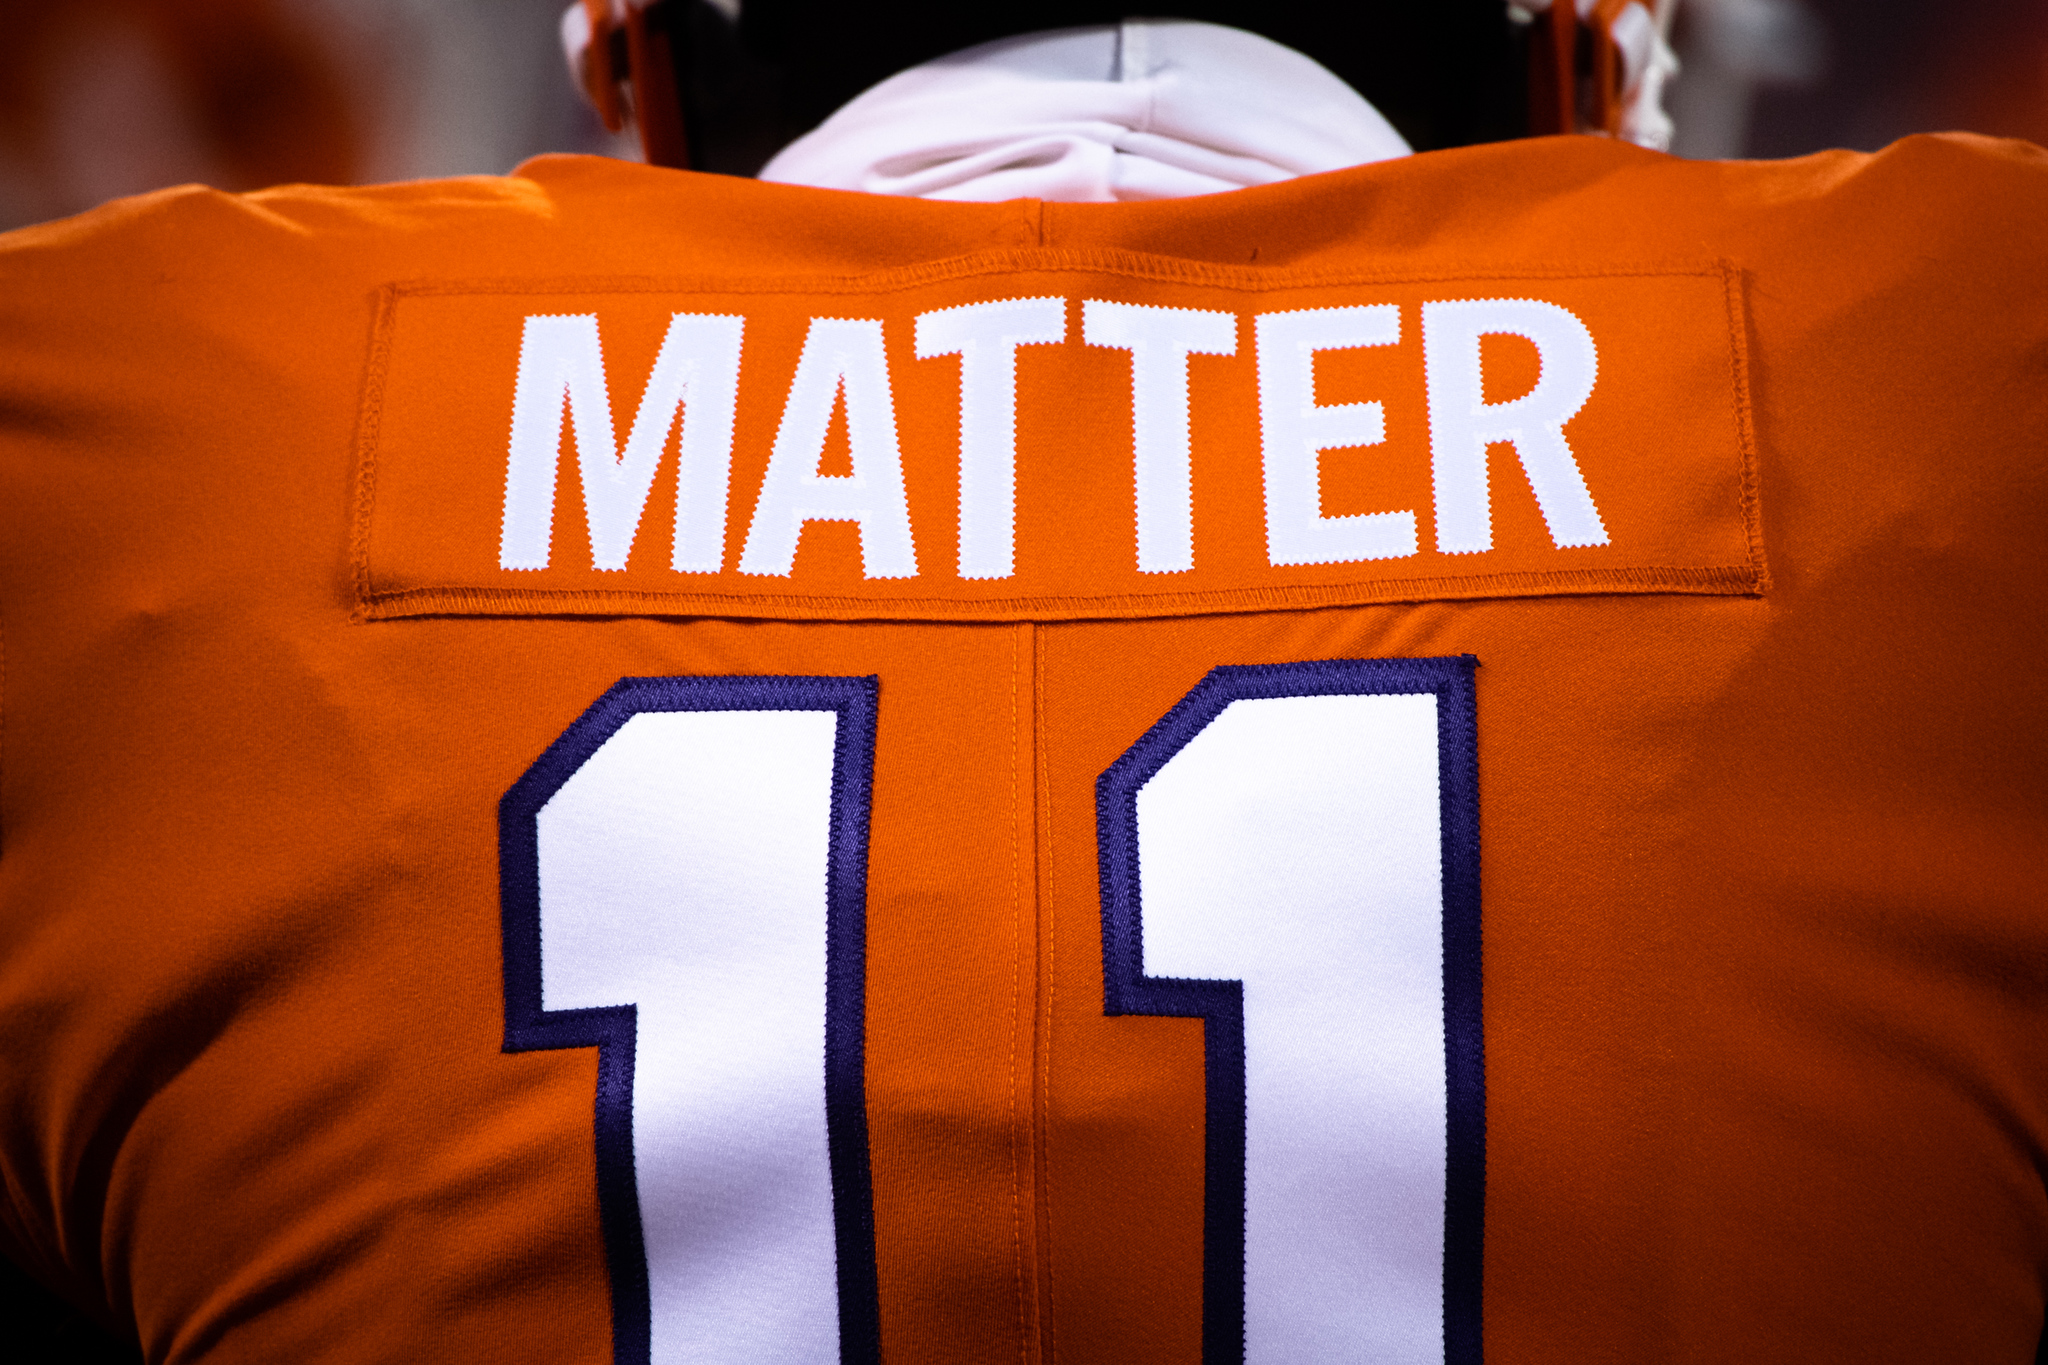 Phrases on jerseys went against Swinney's routine, will not see ...